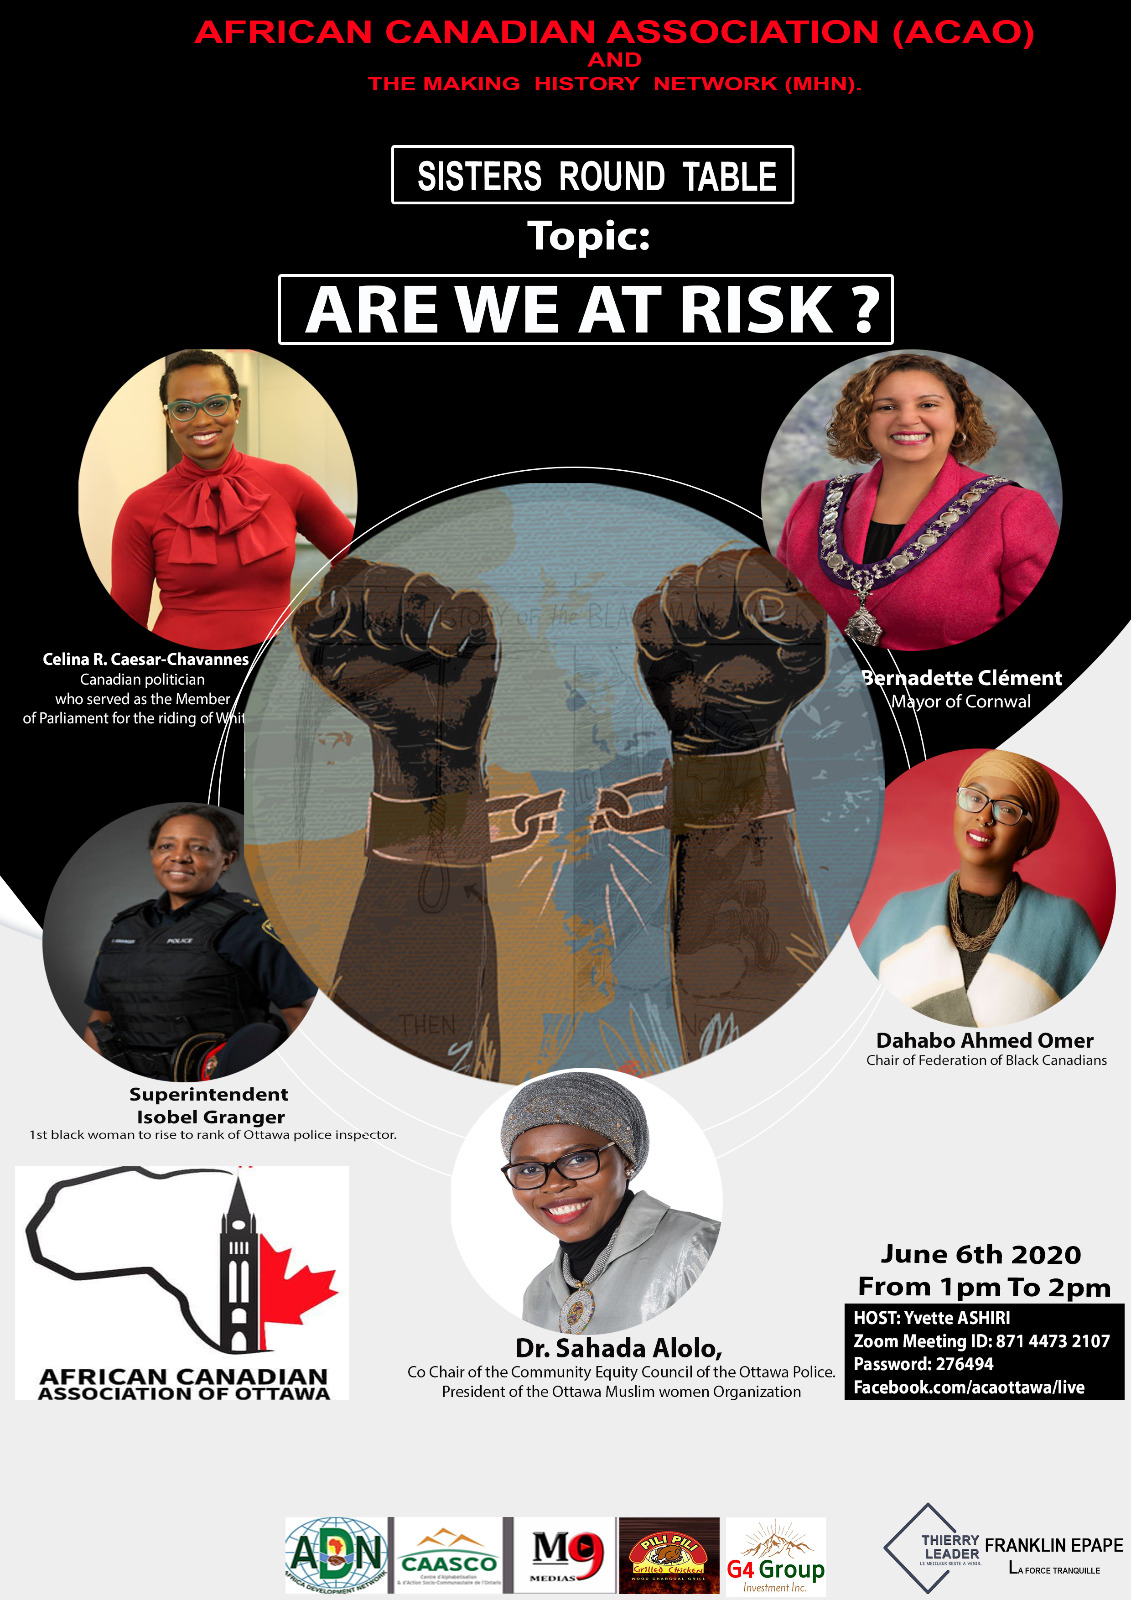 AFRICAN CANADIAN ASSOCIATION (ACAO) AND THE MAKING HISTORY NETWORK (MHN)